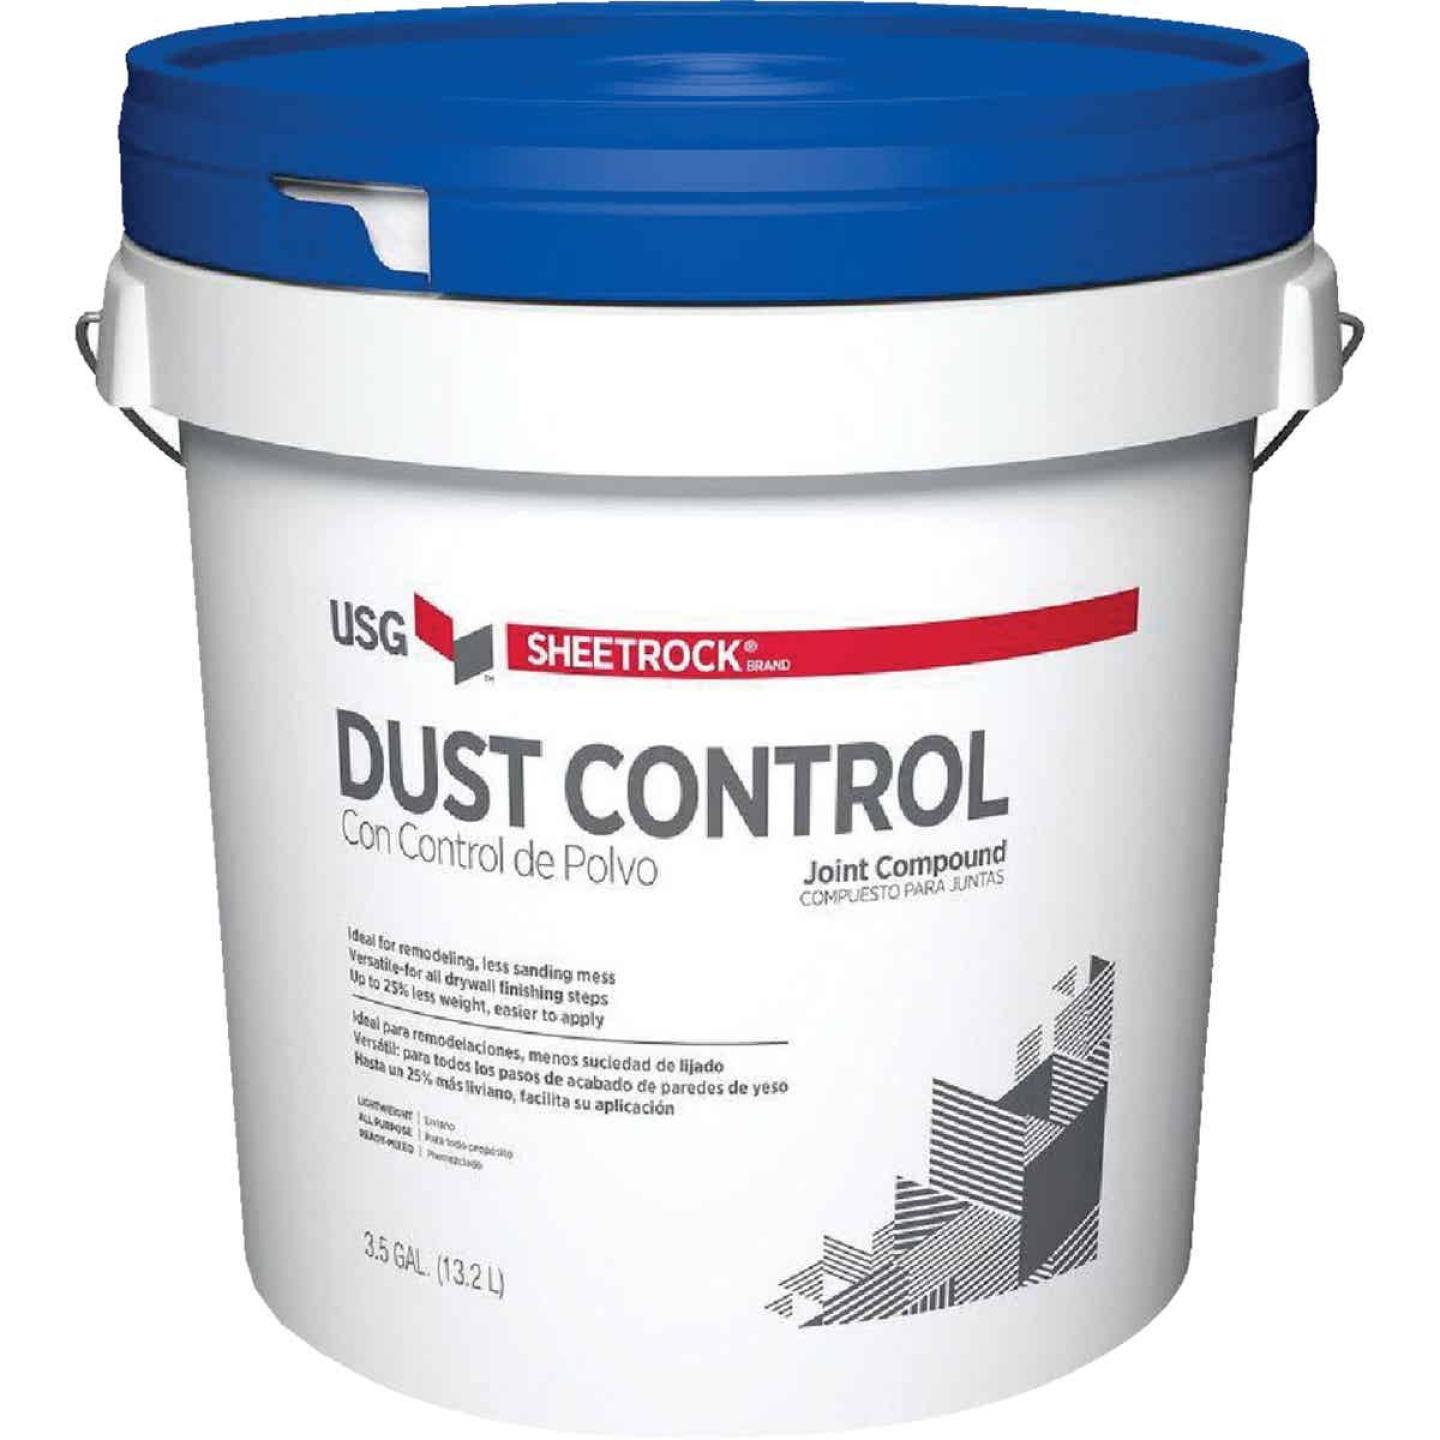 Sheetrock 3.5 Gal. Pail Pre-Mixed Lightweight All-Purpose Dust Control Drywall Joint Compound Image 1